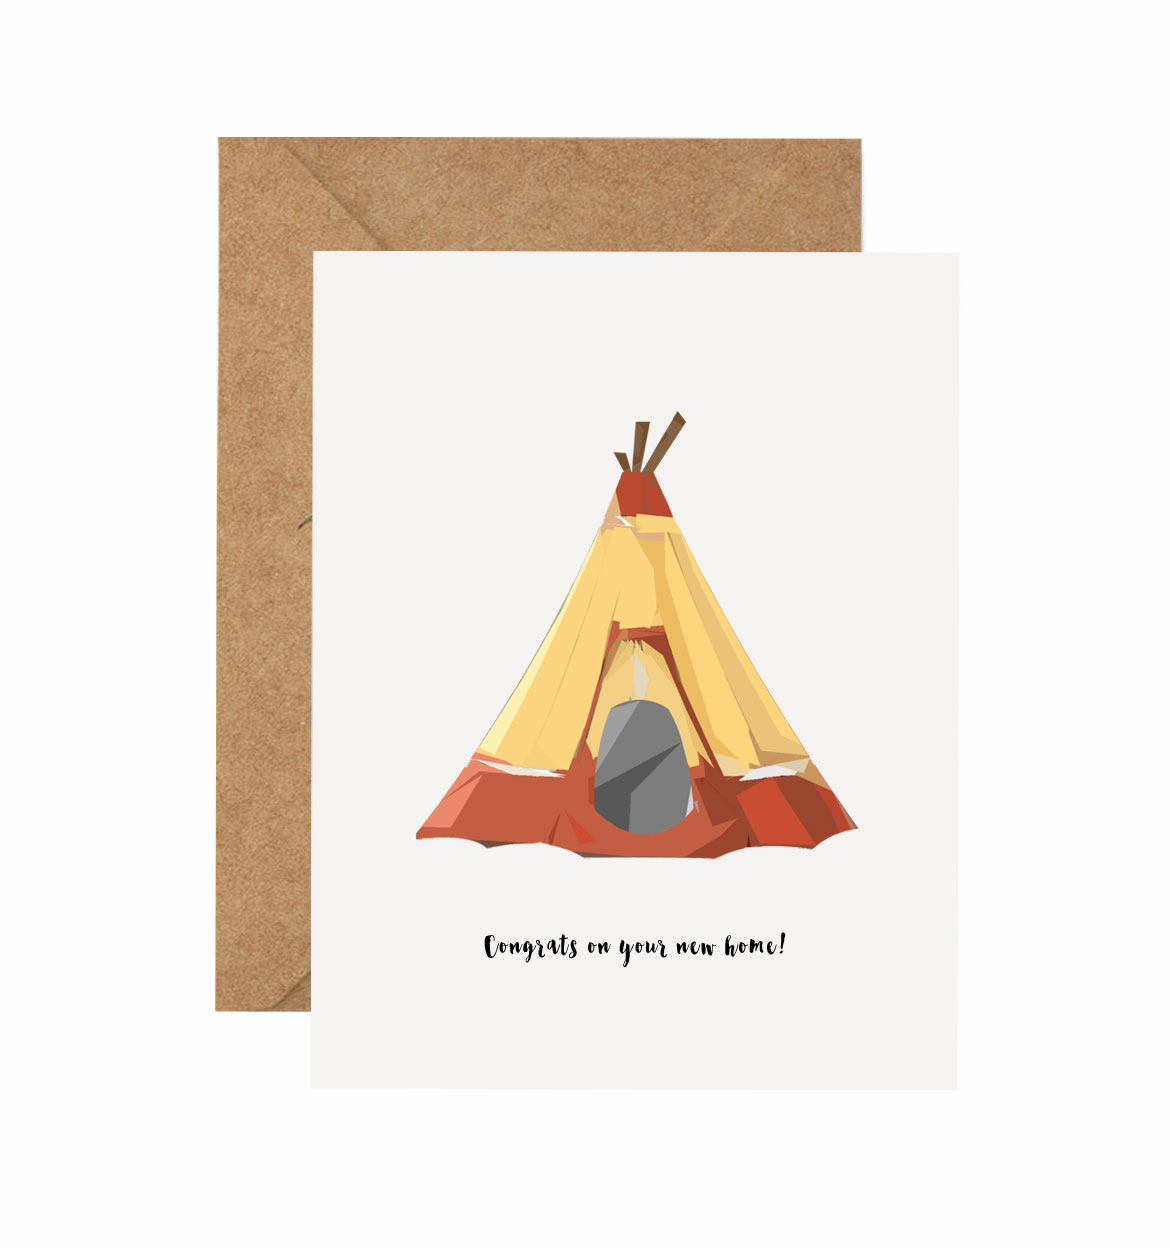 Congrats on your new home new home greeting cards telamoda housewarming kristyandbryce Image collections